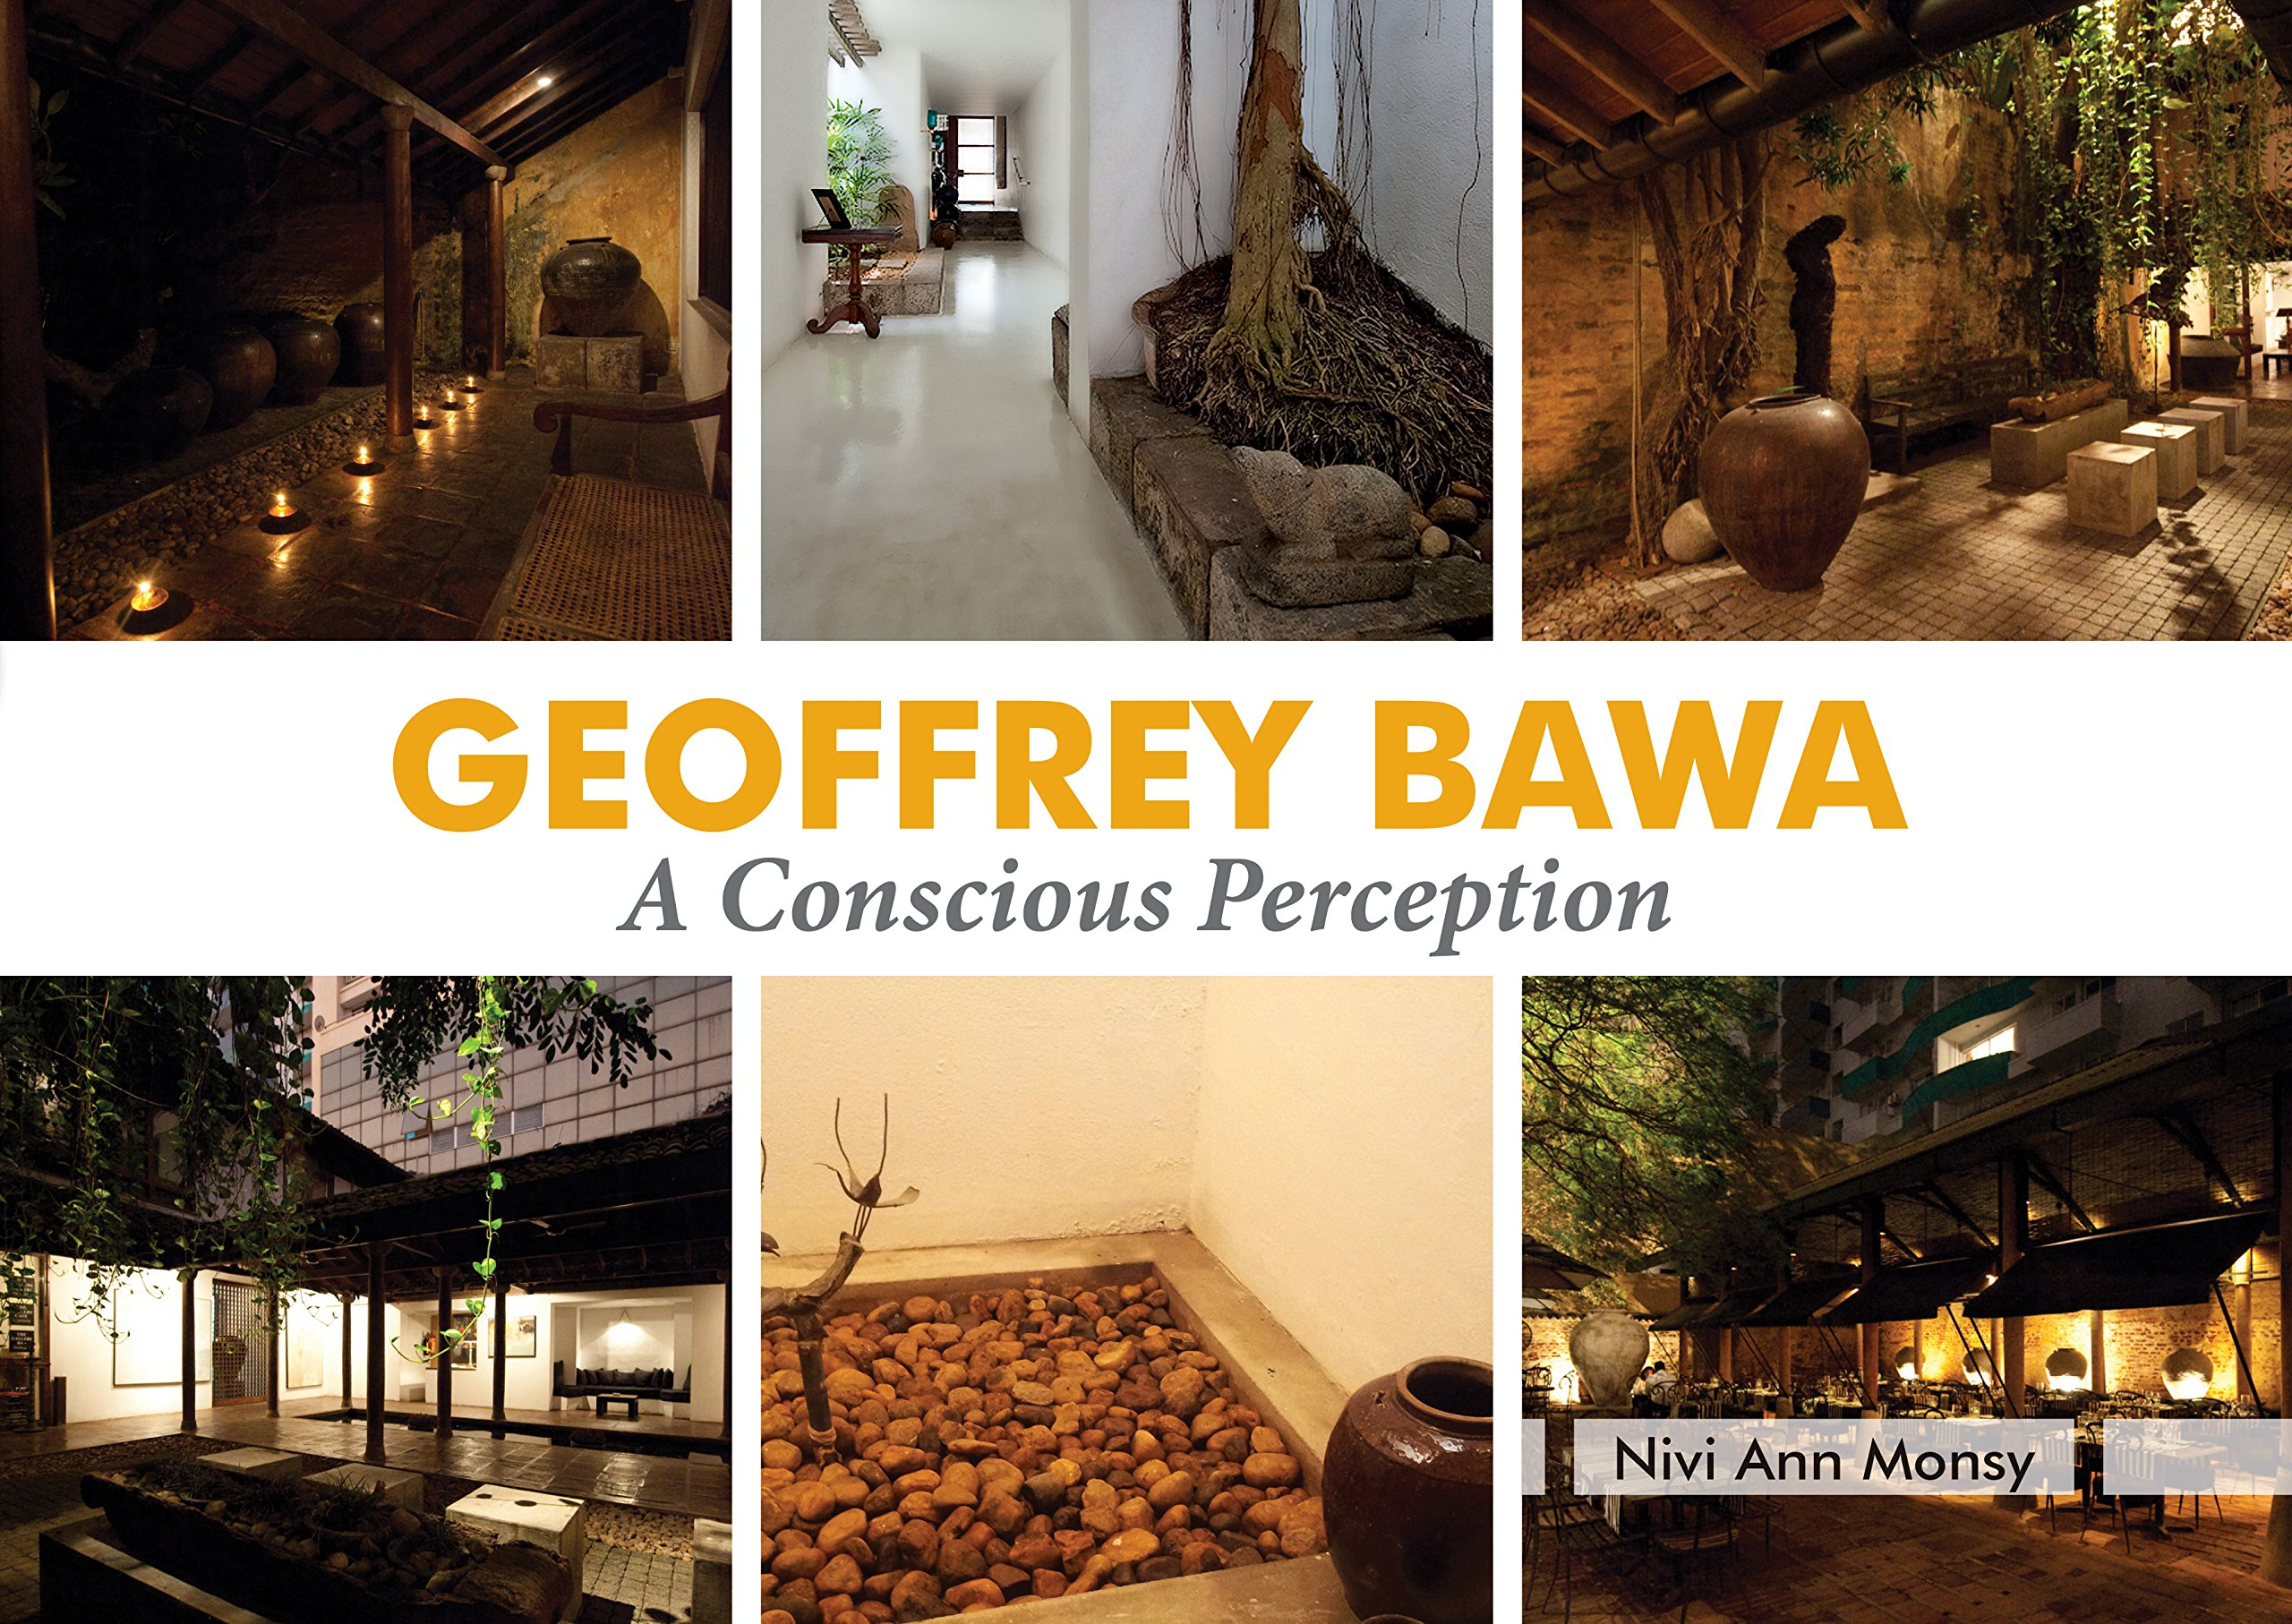 Amazon.in: Buy Geoffrey Bawa - A Conscious Perception Book Online at Low  Prices in India | Geoffrey Bawa - A Conscious Perception Reviews & Ratings